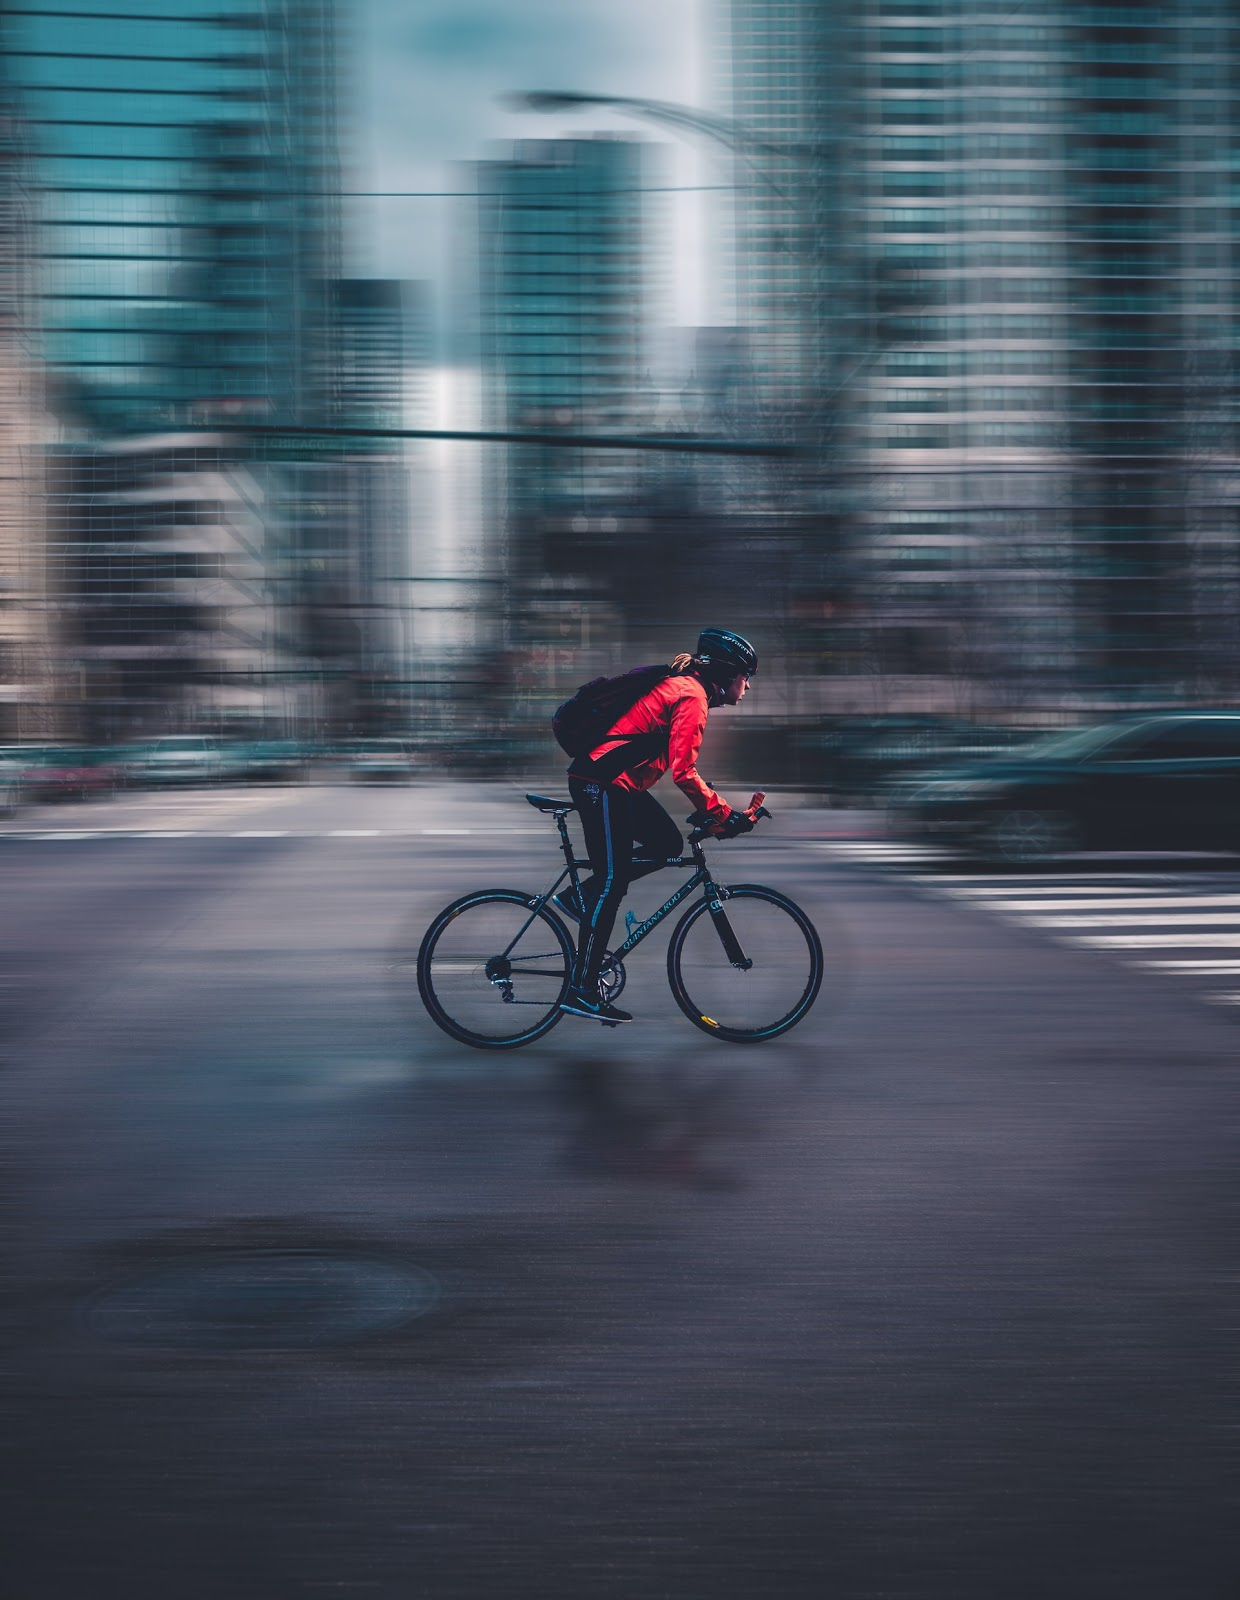 Cyclist wearing a helmet with a blurred city background.